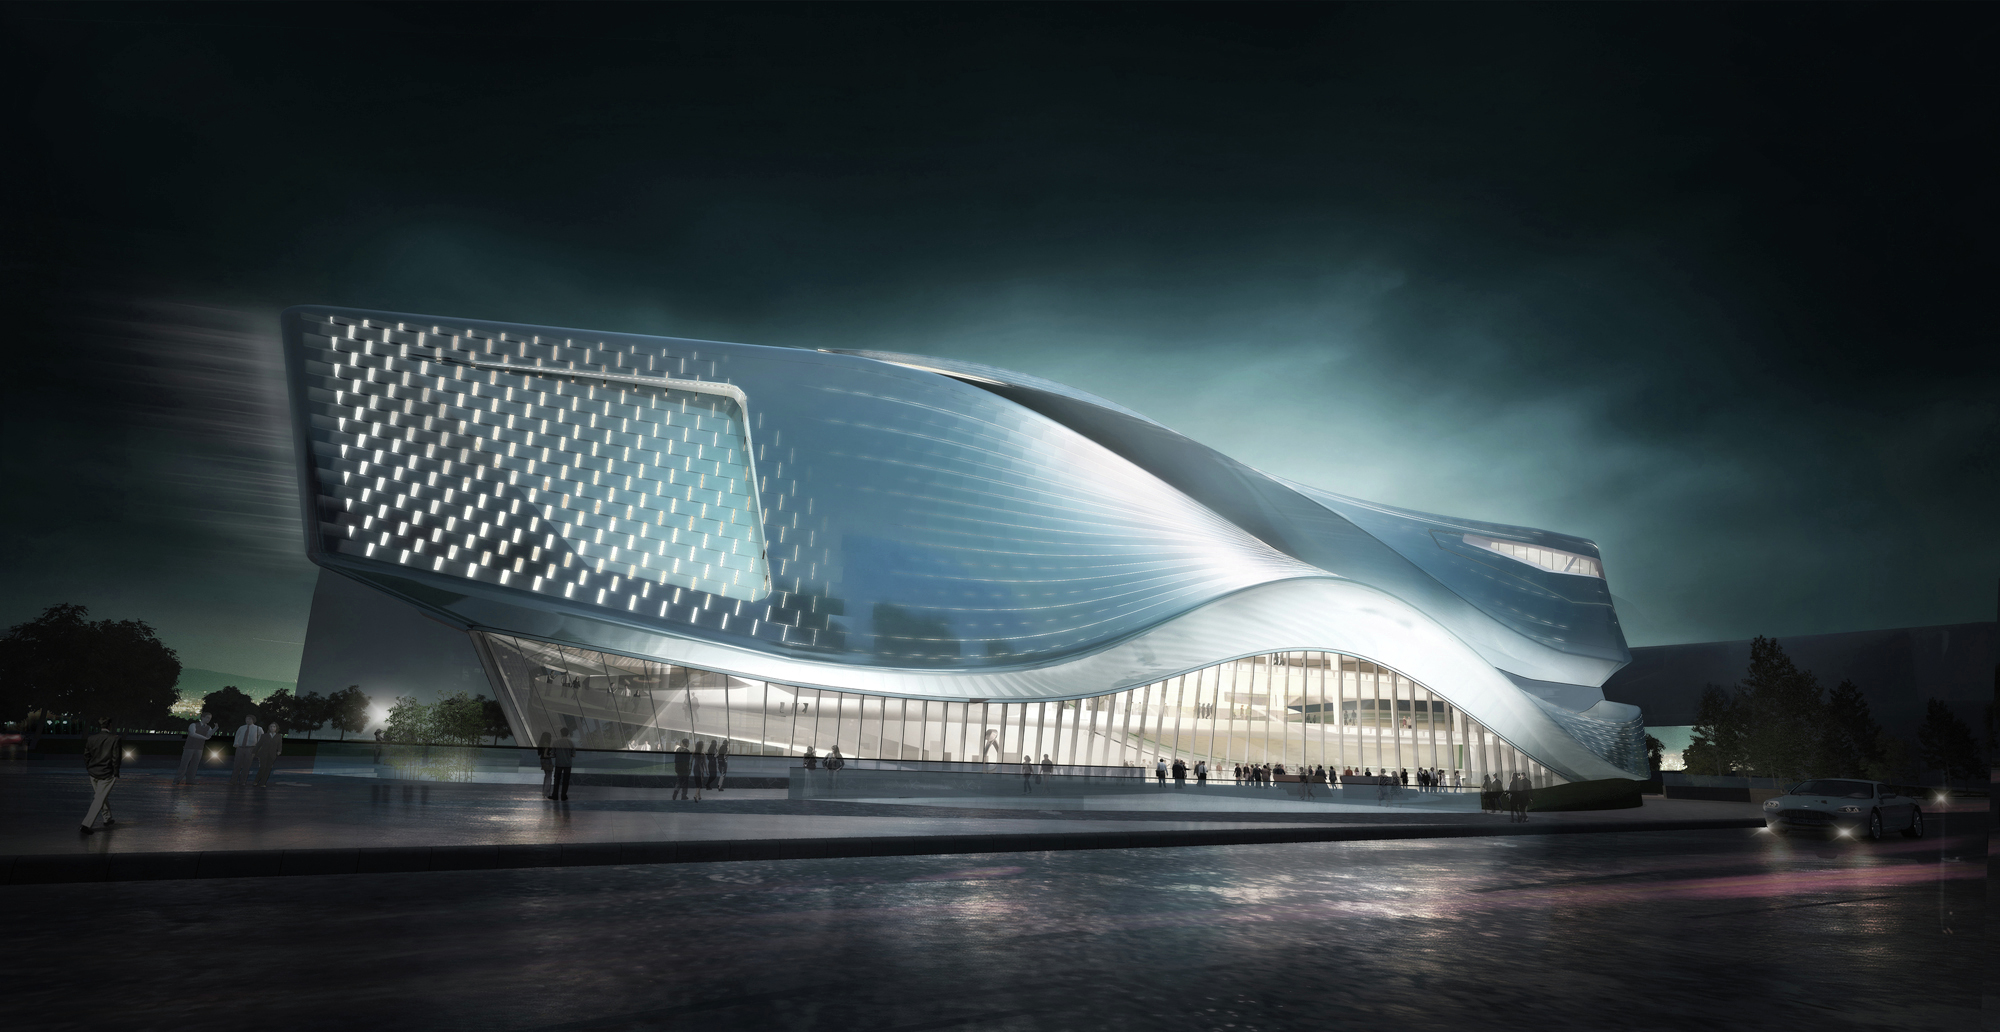 Dalian planning museum 10 design archdaily for Contemporary architecture design concept